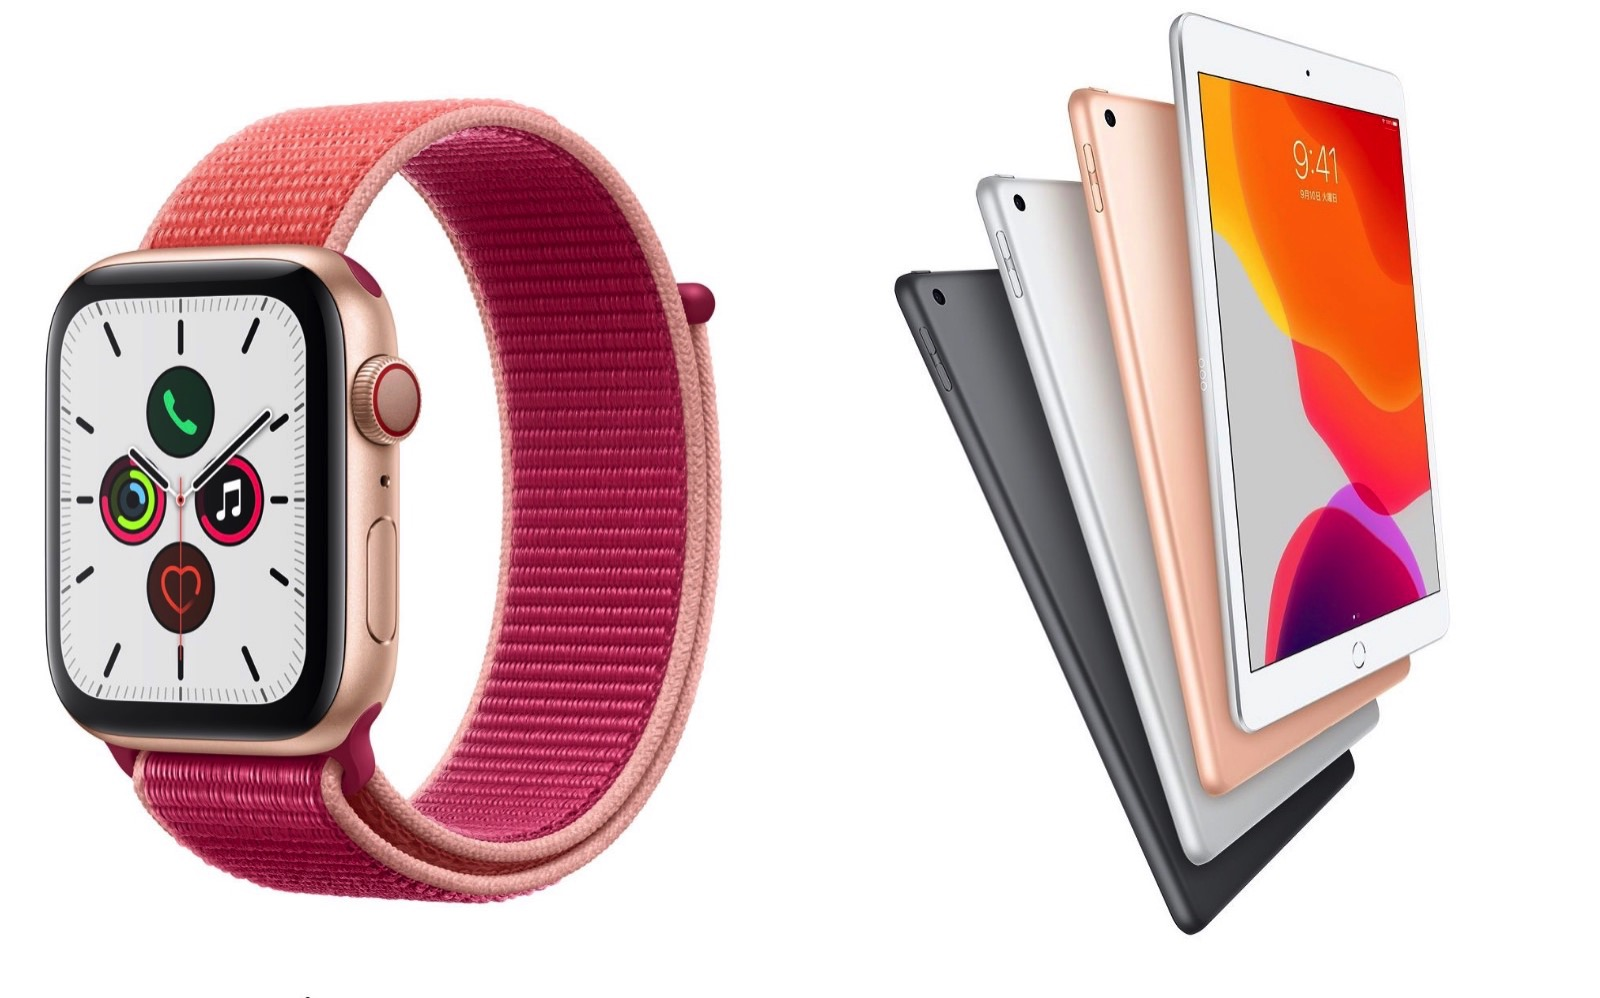 AppleWatchSeries5 and iPad7